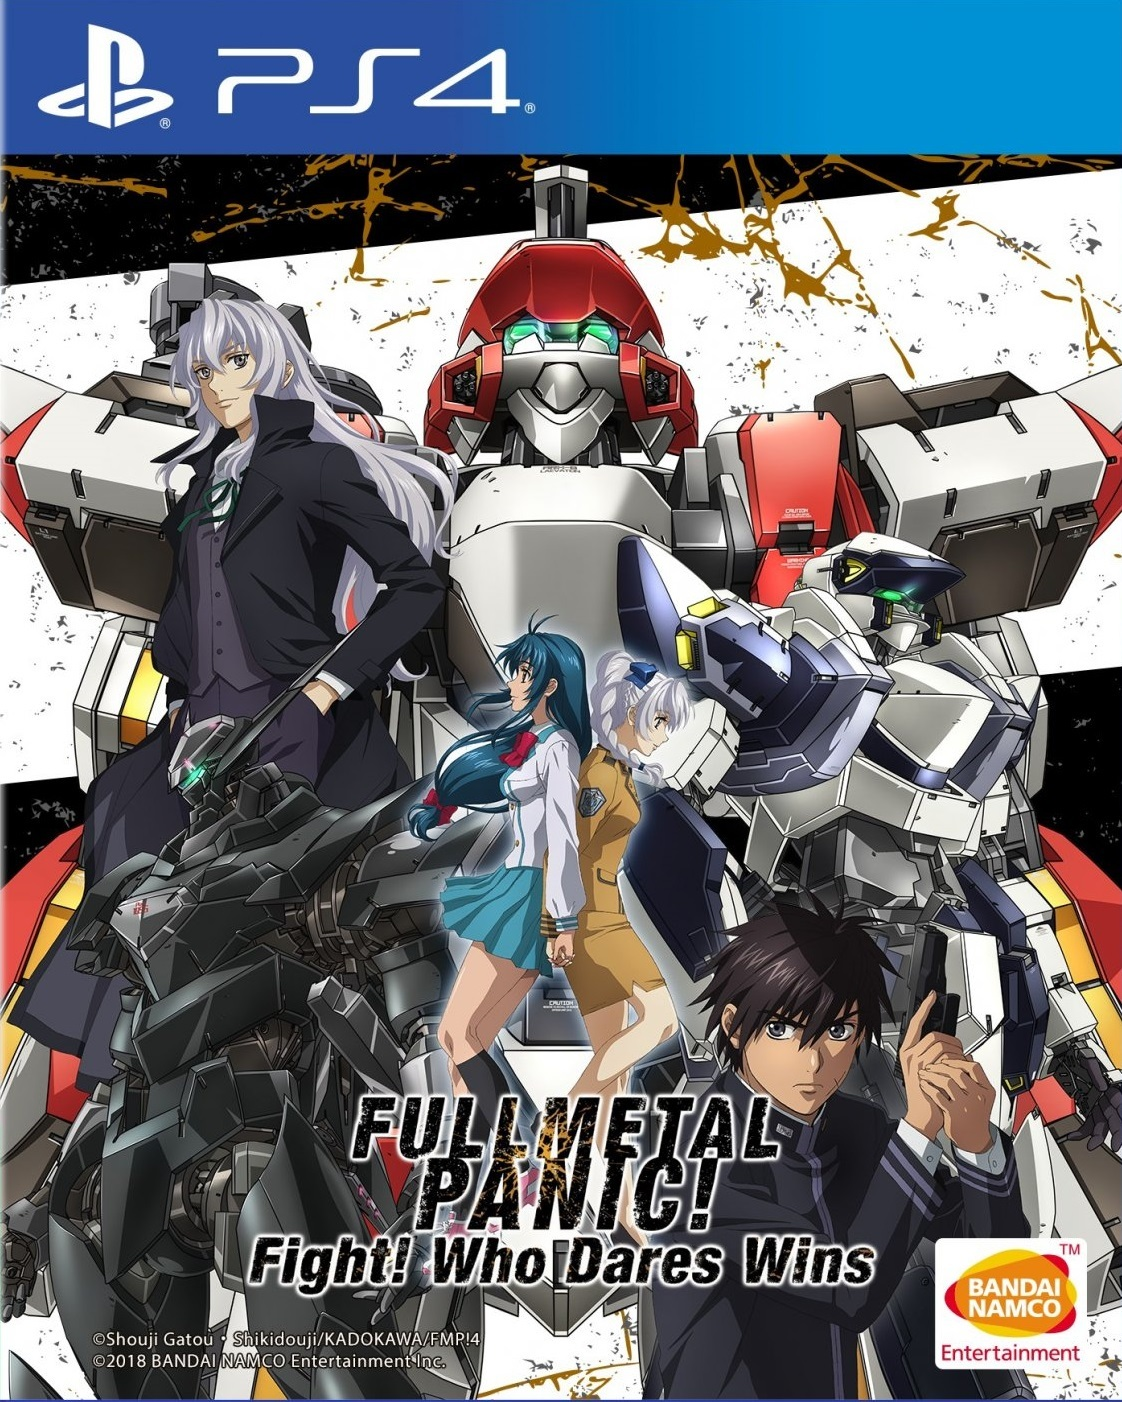 full-metal-panic-fight-who-dares-wins-chinese-subs-557503.1.jpg